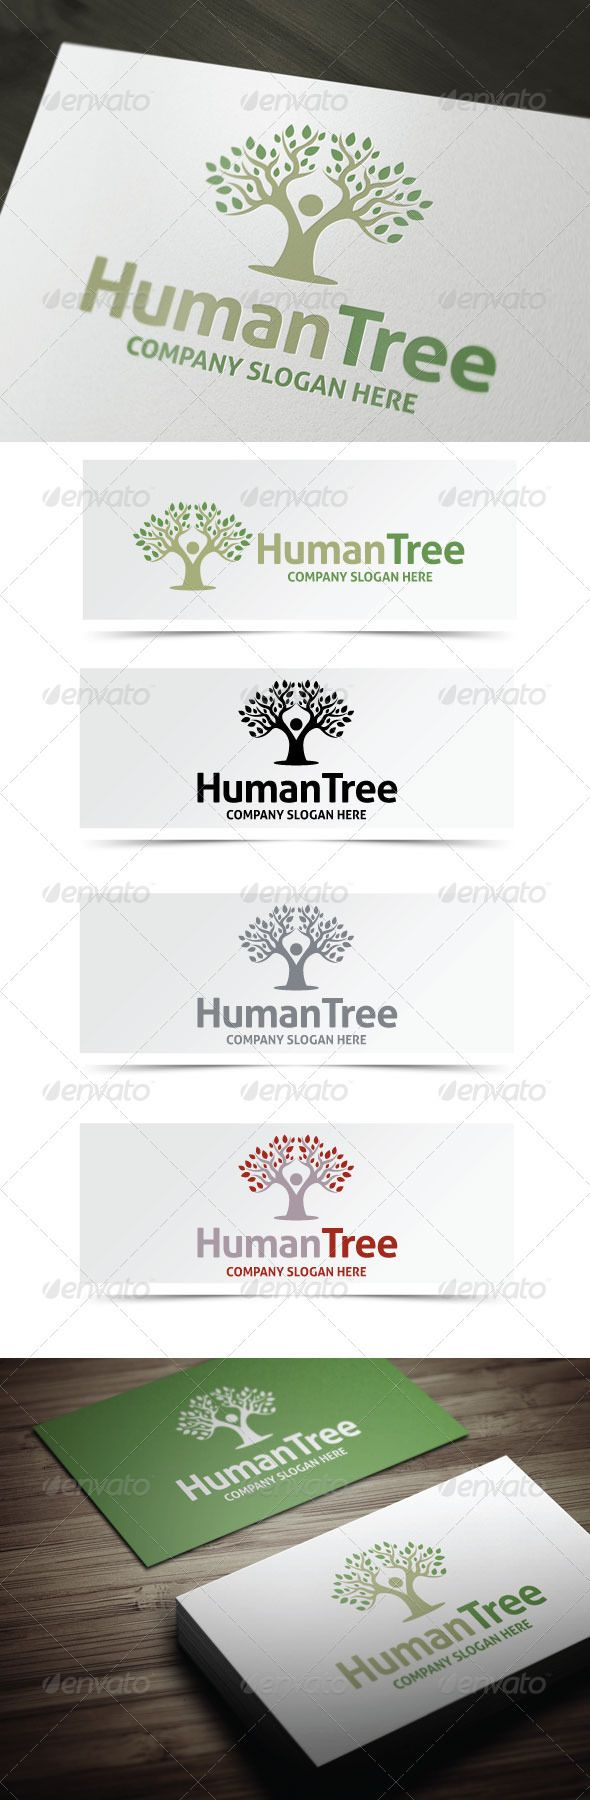 Human Tree Logo — Vector EPS #teaching #logo • Available here → https://graphicriver.net/item/human-tree-logo/3719667?ref=pxcr